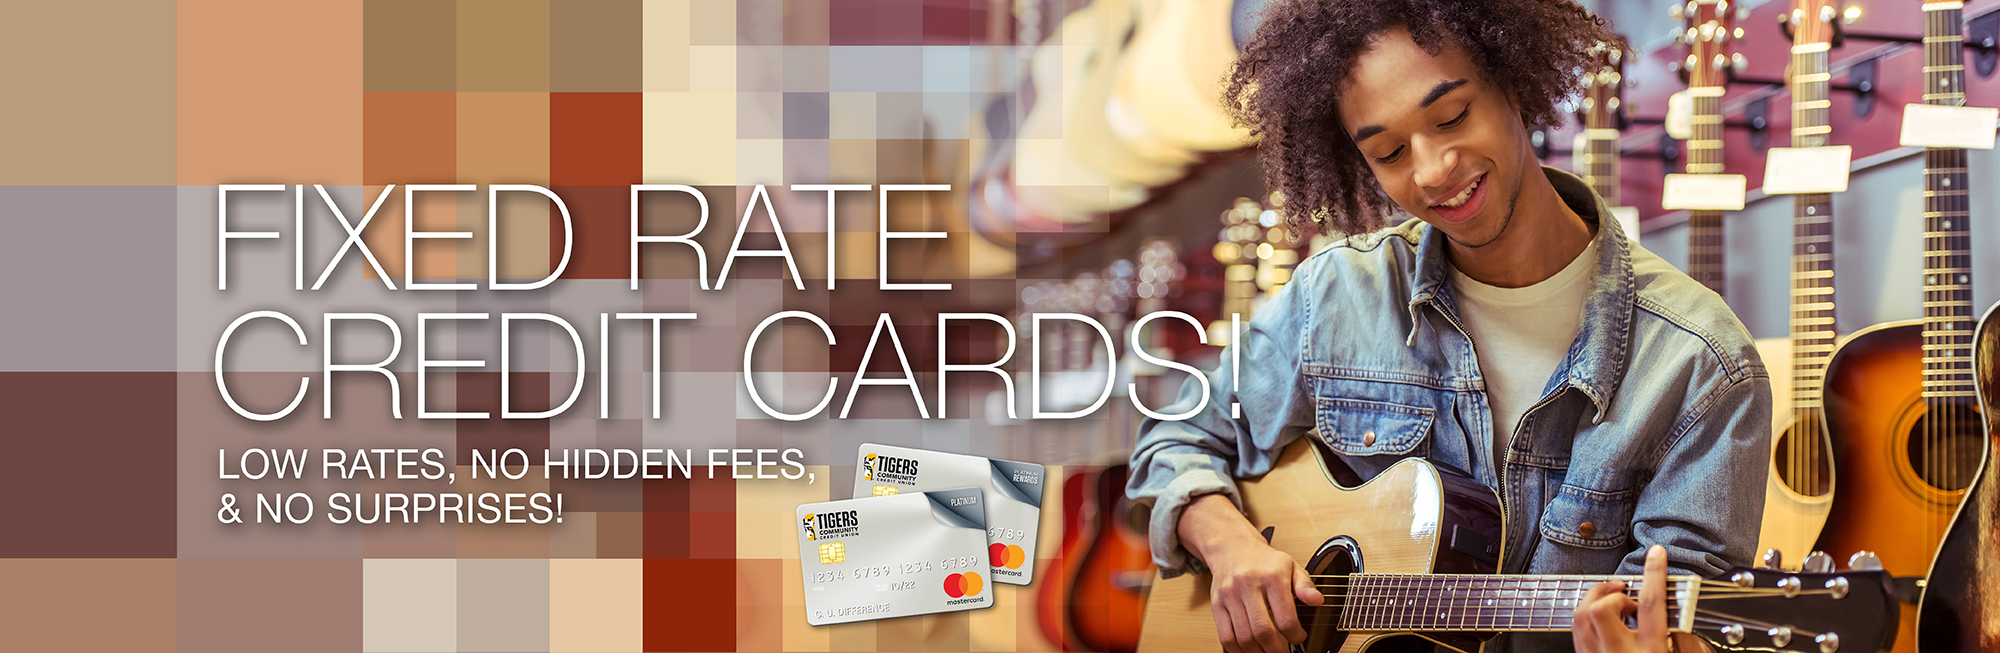 Fixed Rate Credit Cards with low rates, no hidden fees, and no surpises. Click to learn more.